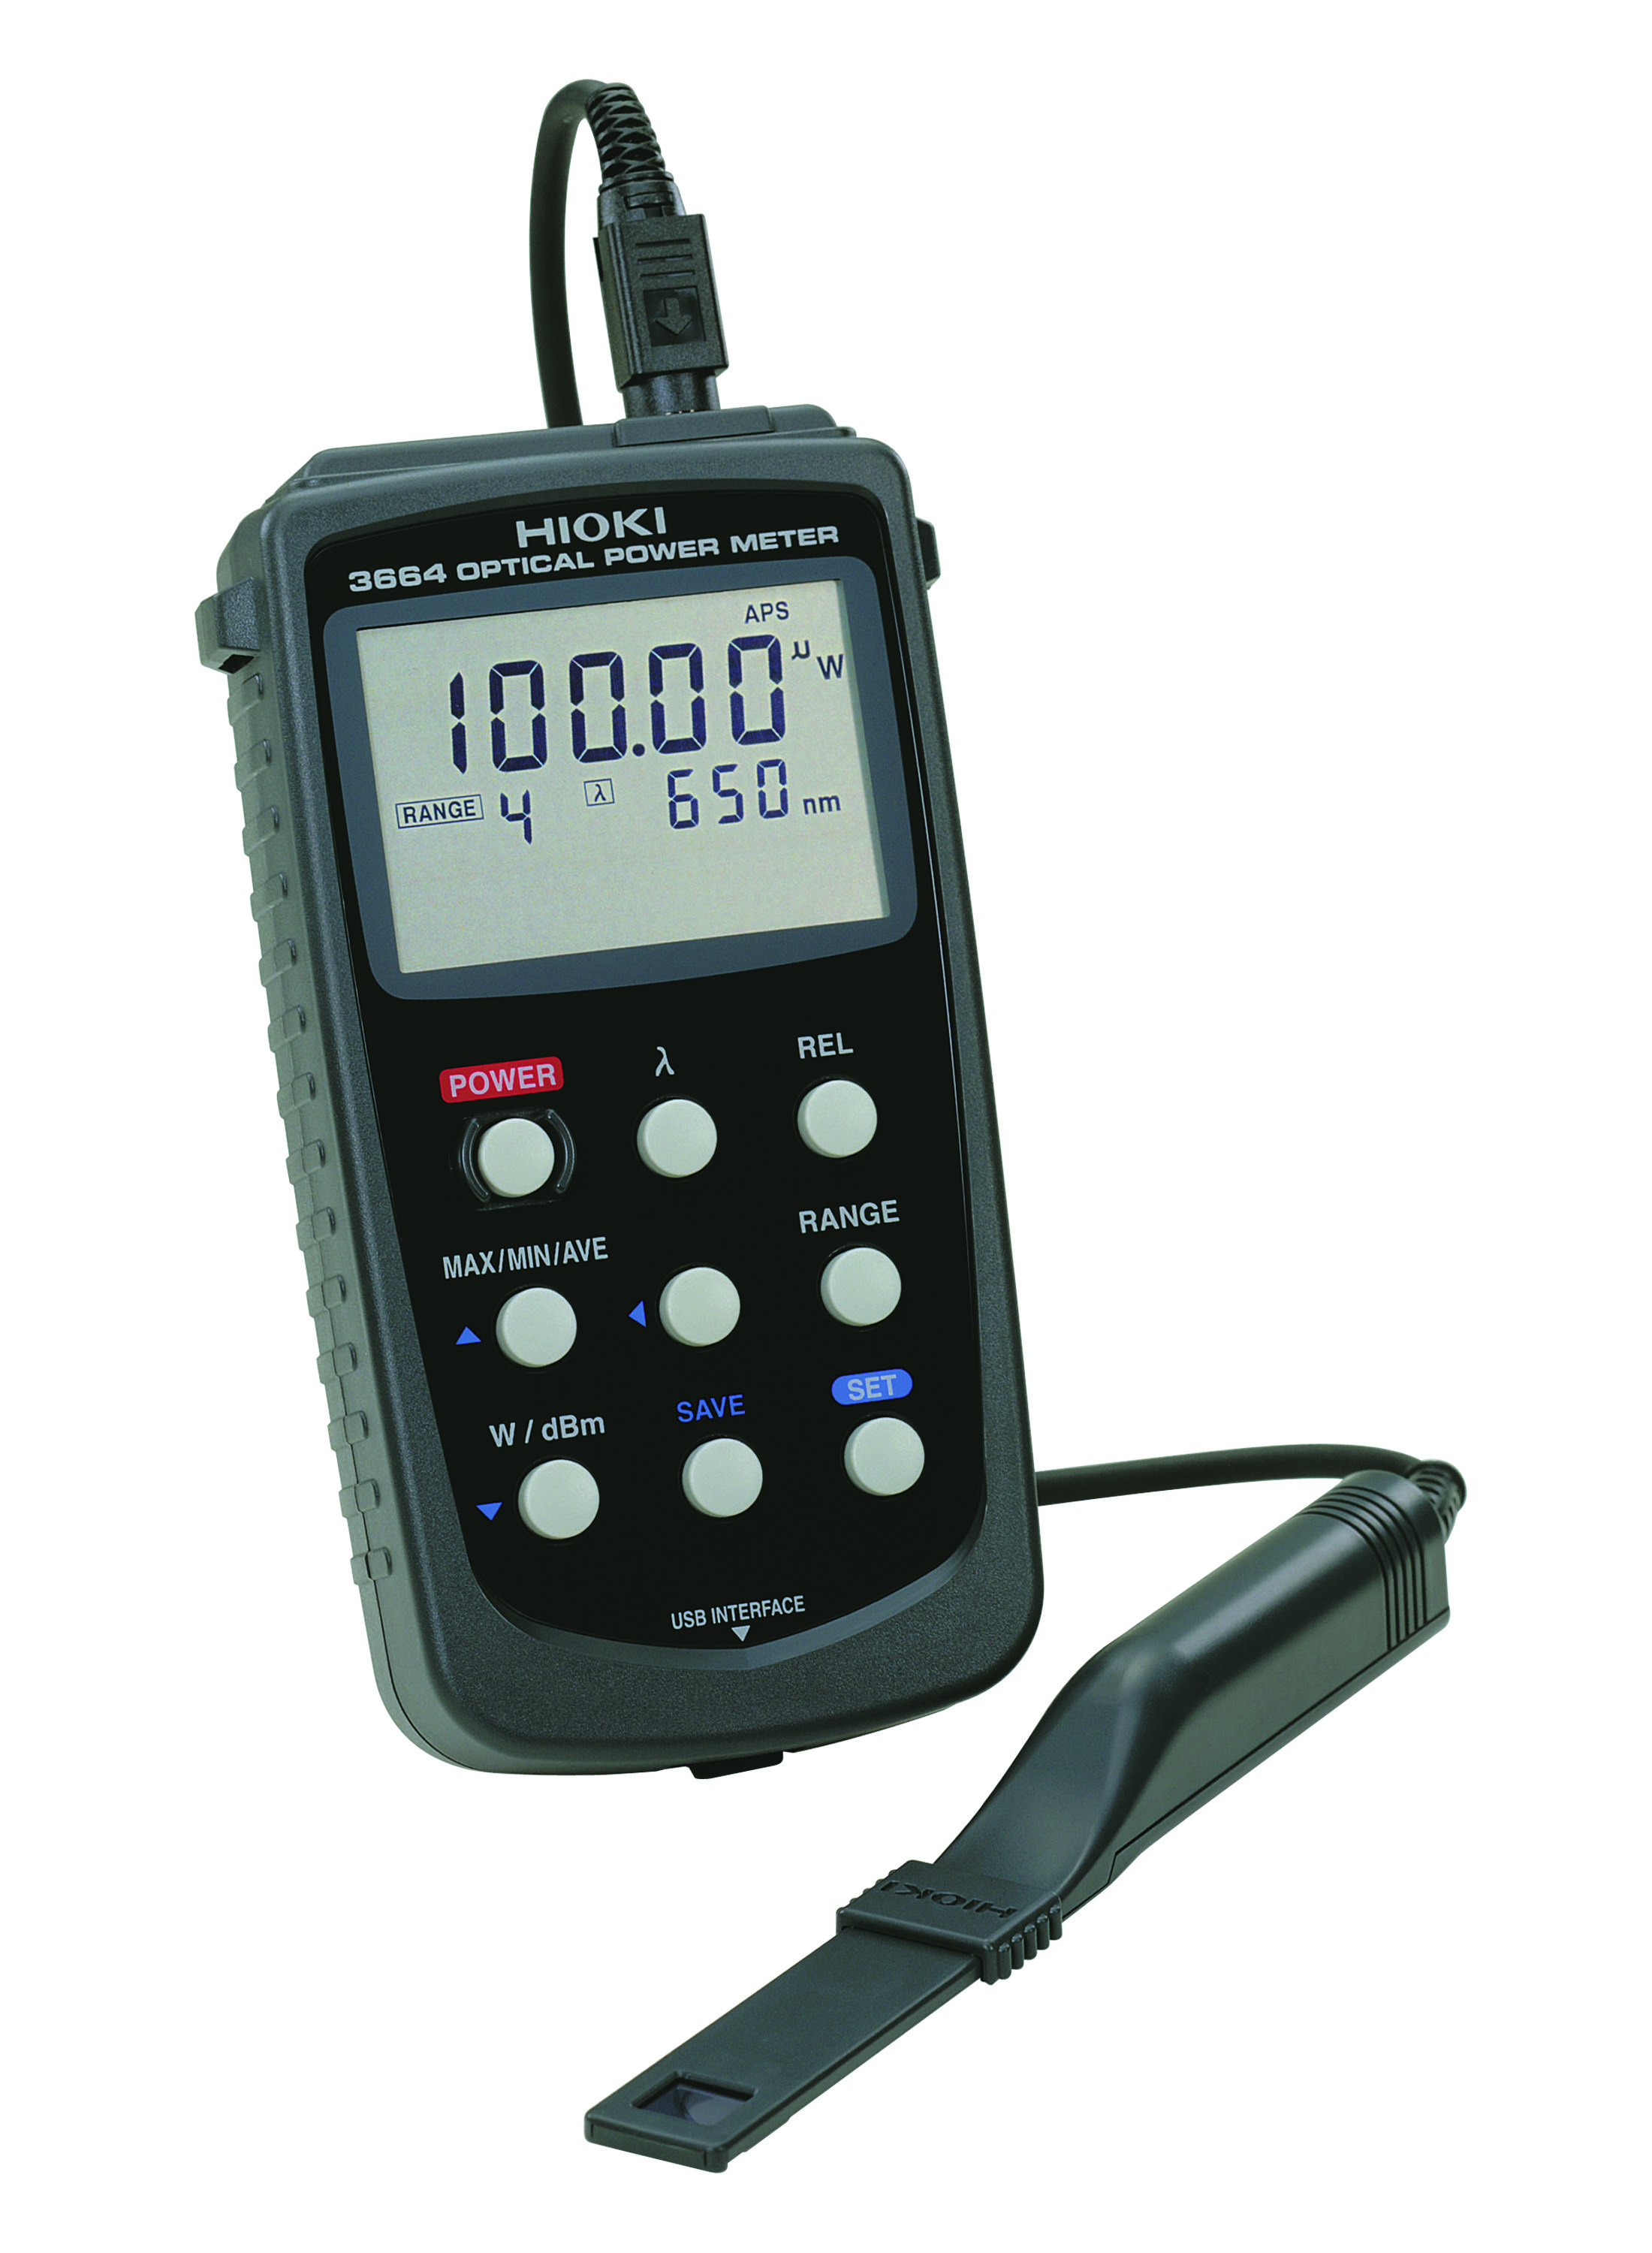 3664 Optical Power Meter